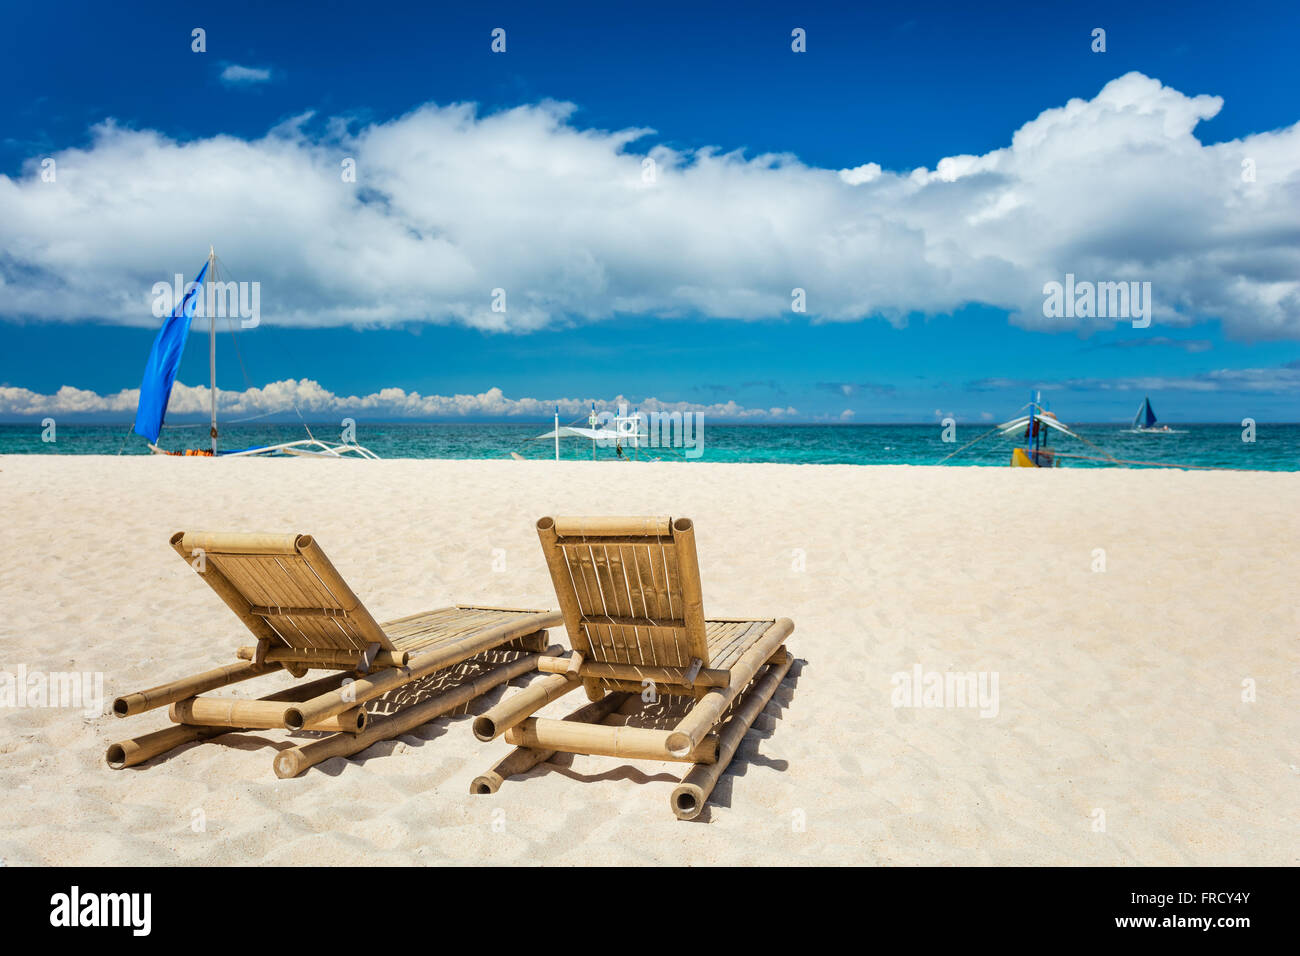 Tropical beach with chaise longues in foreground - Stock Image